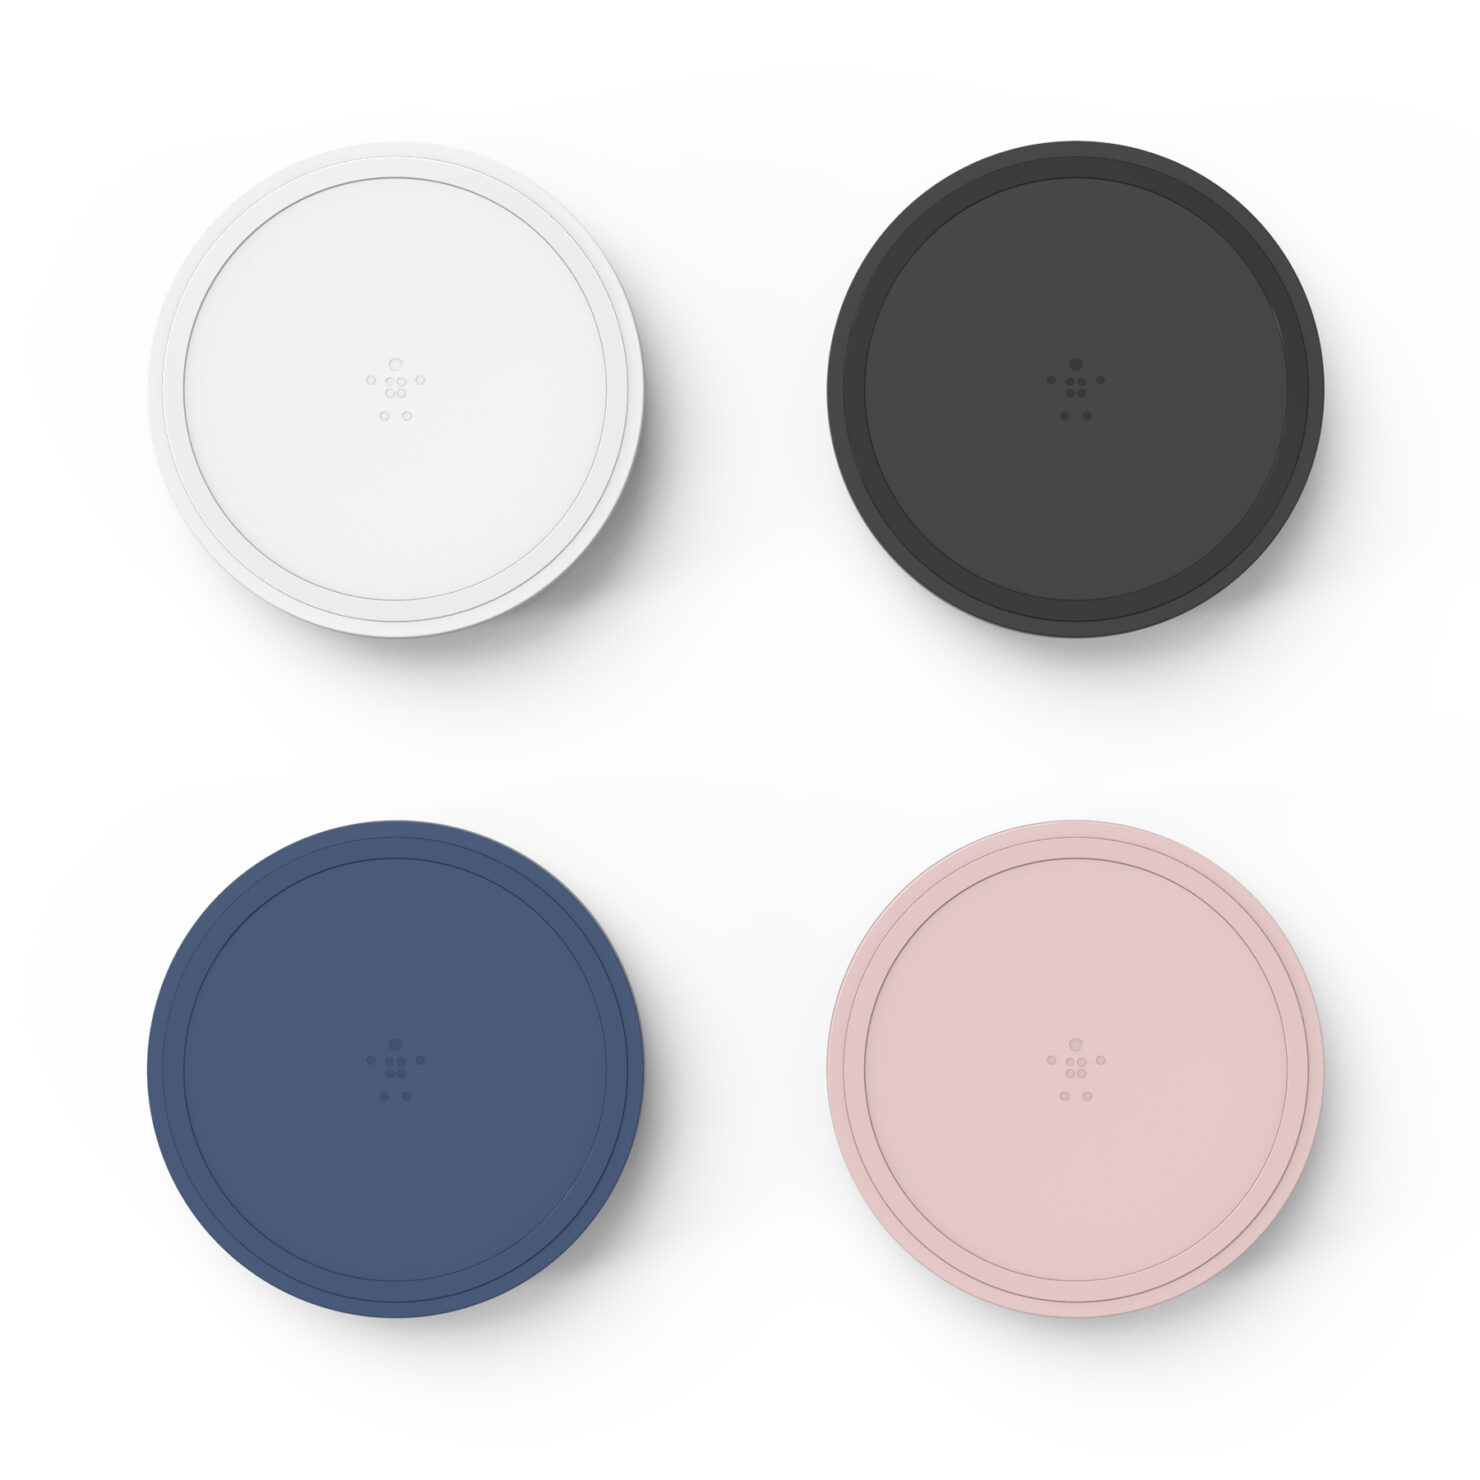 bold_charging_pad_color_2